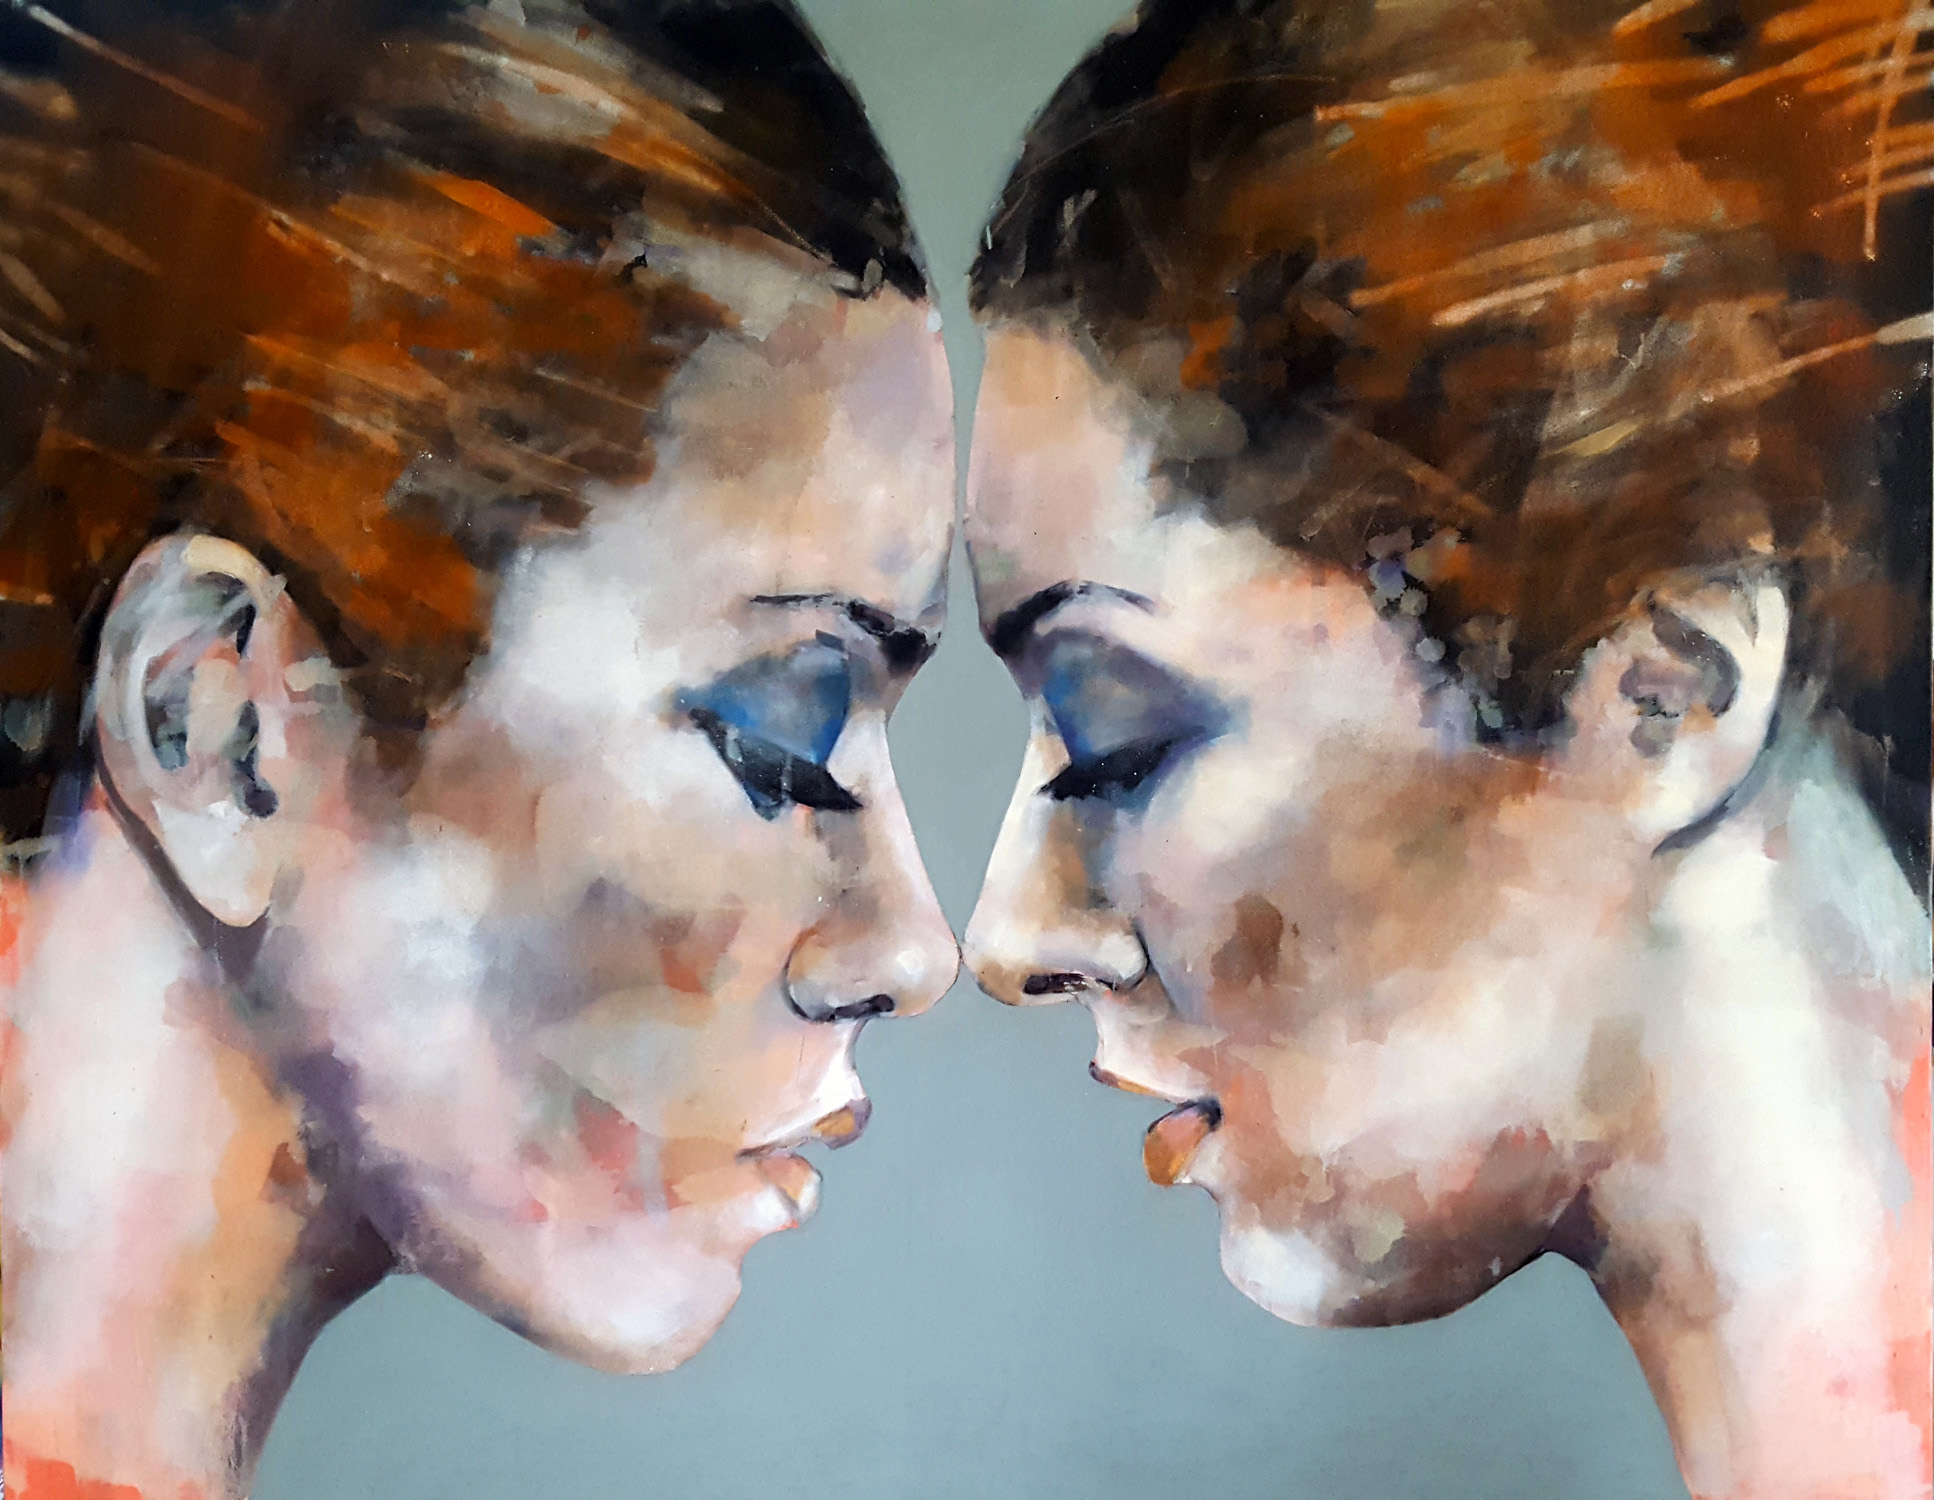 11-22-18 double head study, oil on canvas, 146x120cm